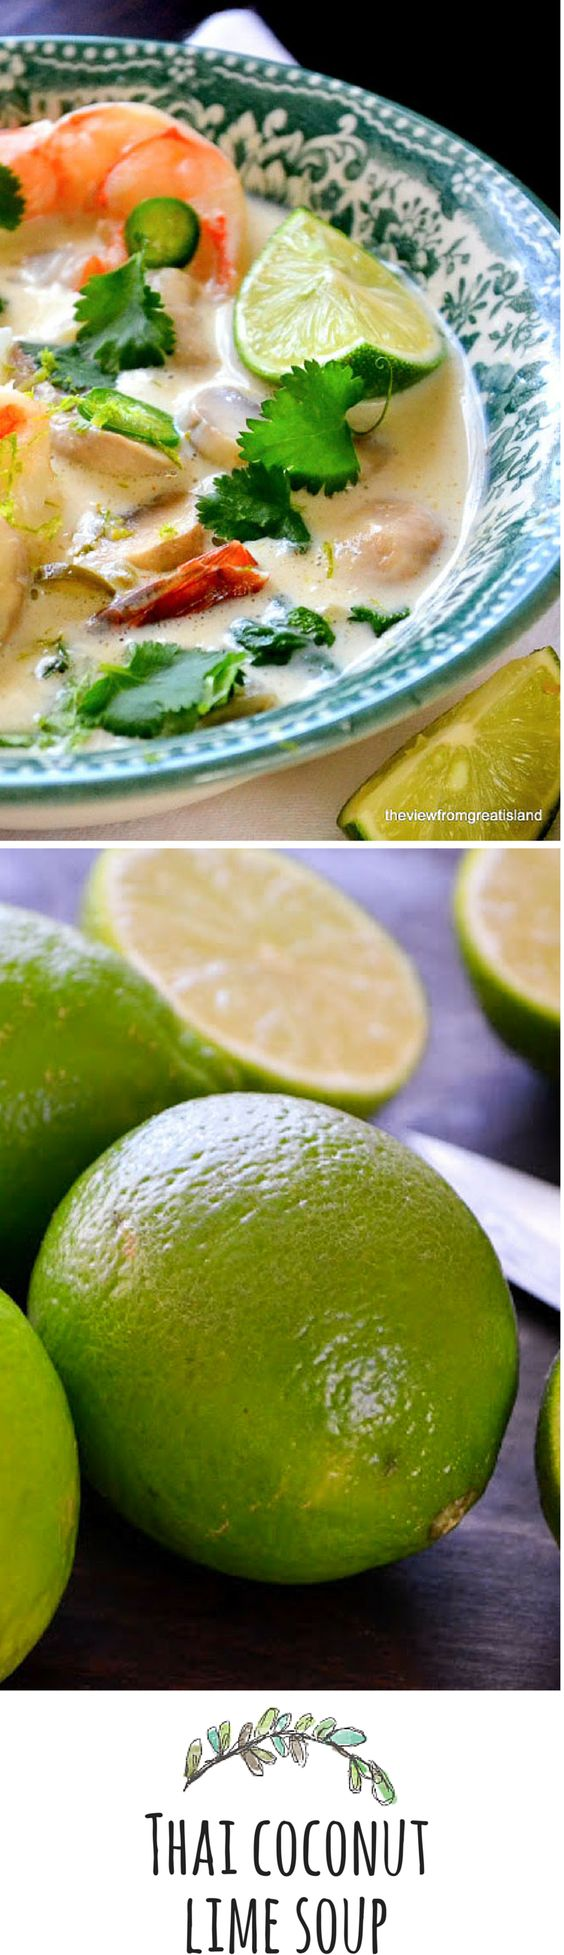 Shrimp, Limes and Coconut on Pinterest